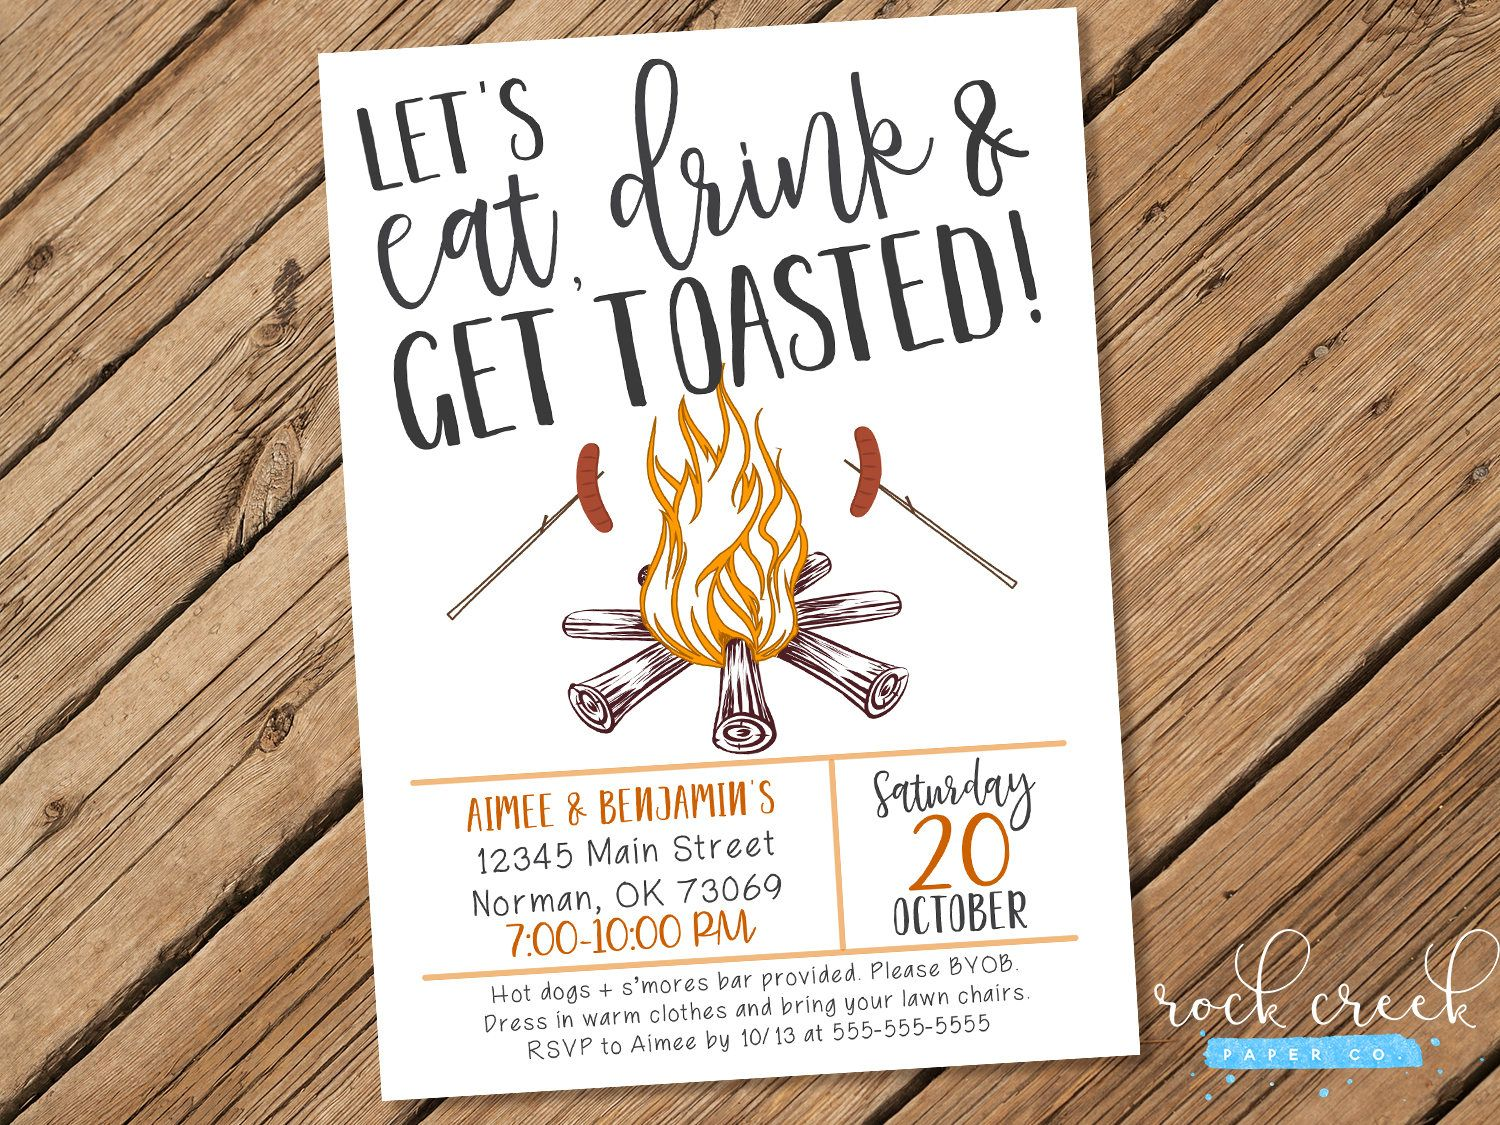 Eat Drink & Get Toasted Invitation, Bonfire Party Invitation ...